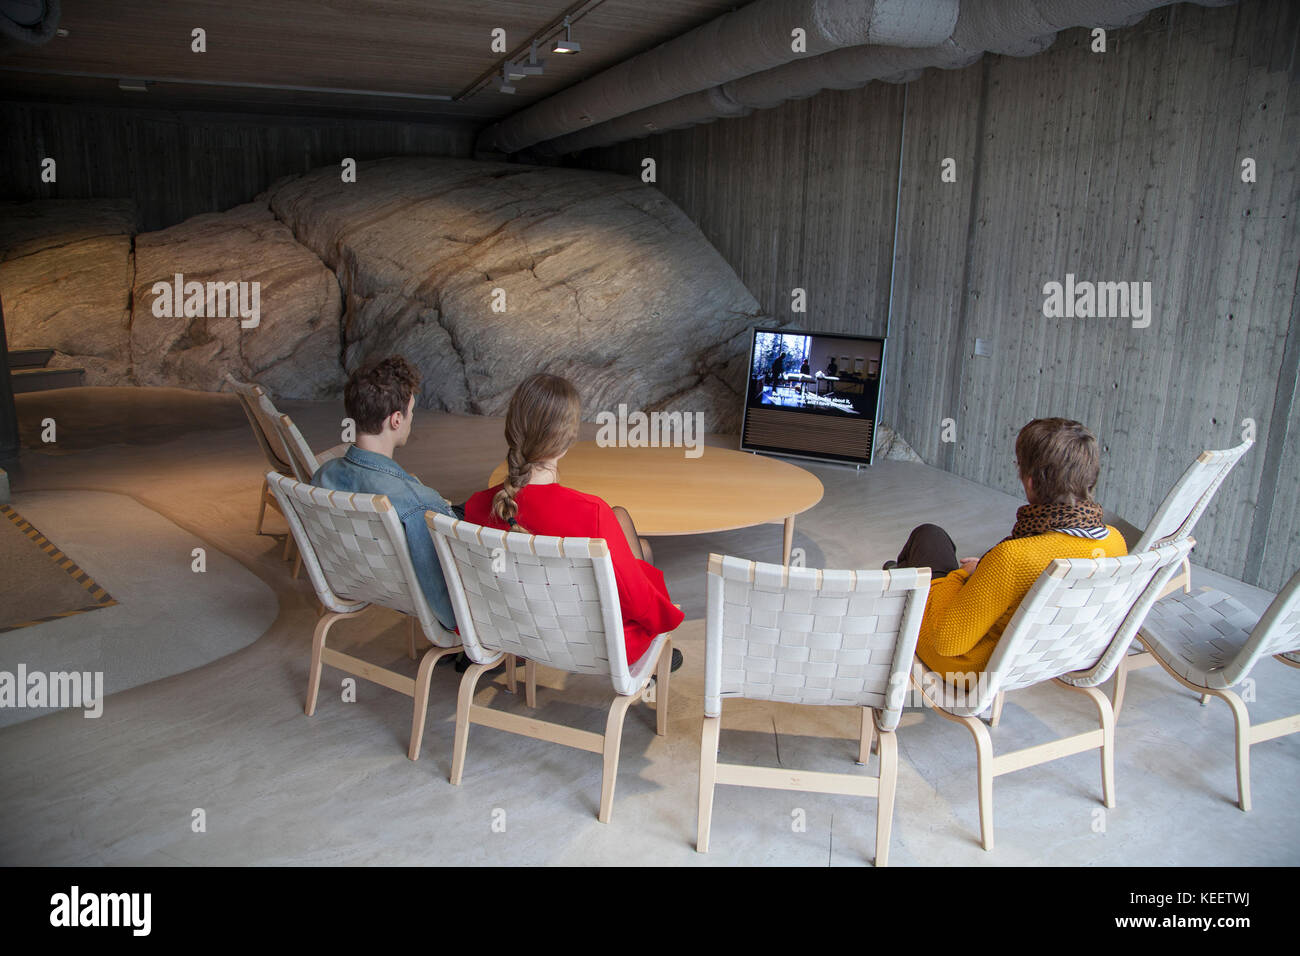 ARTIPELAG a new art and event hall in the archipelago of Stockholm. Inspired by Danish Louisiana you have art exhibitions - Stock Image